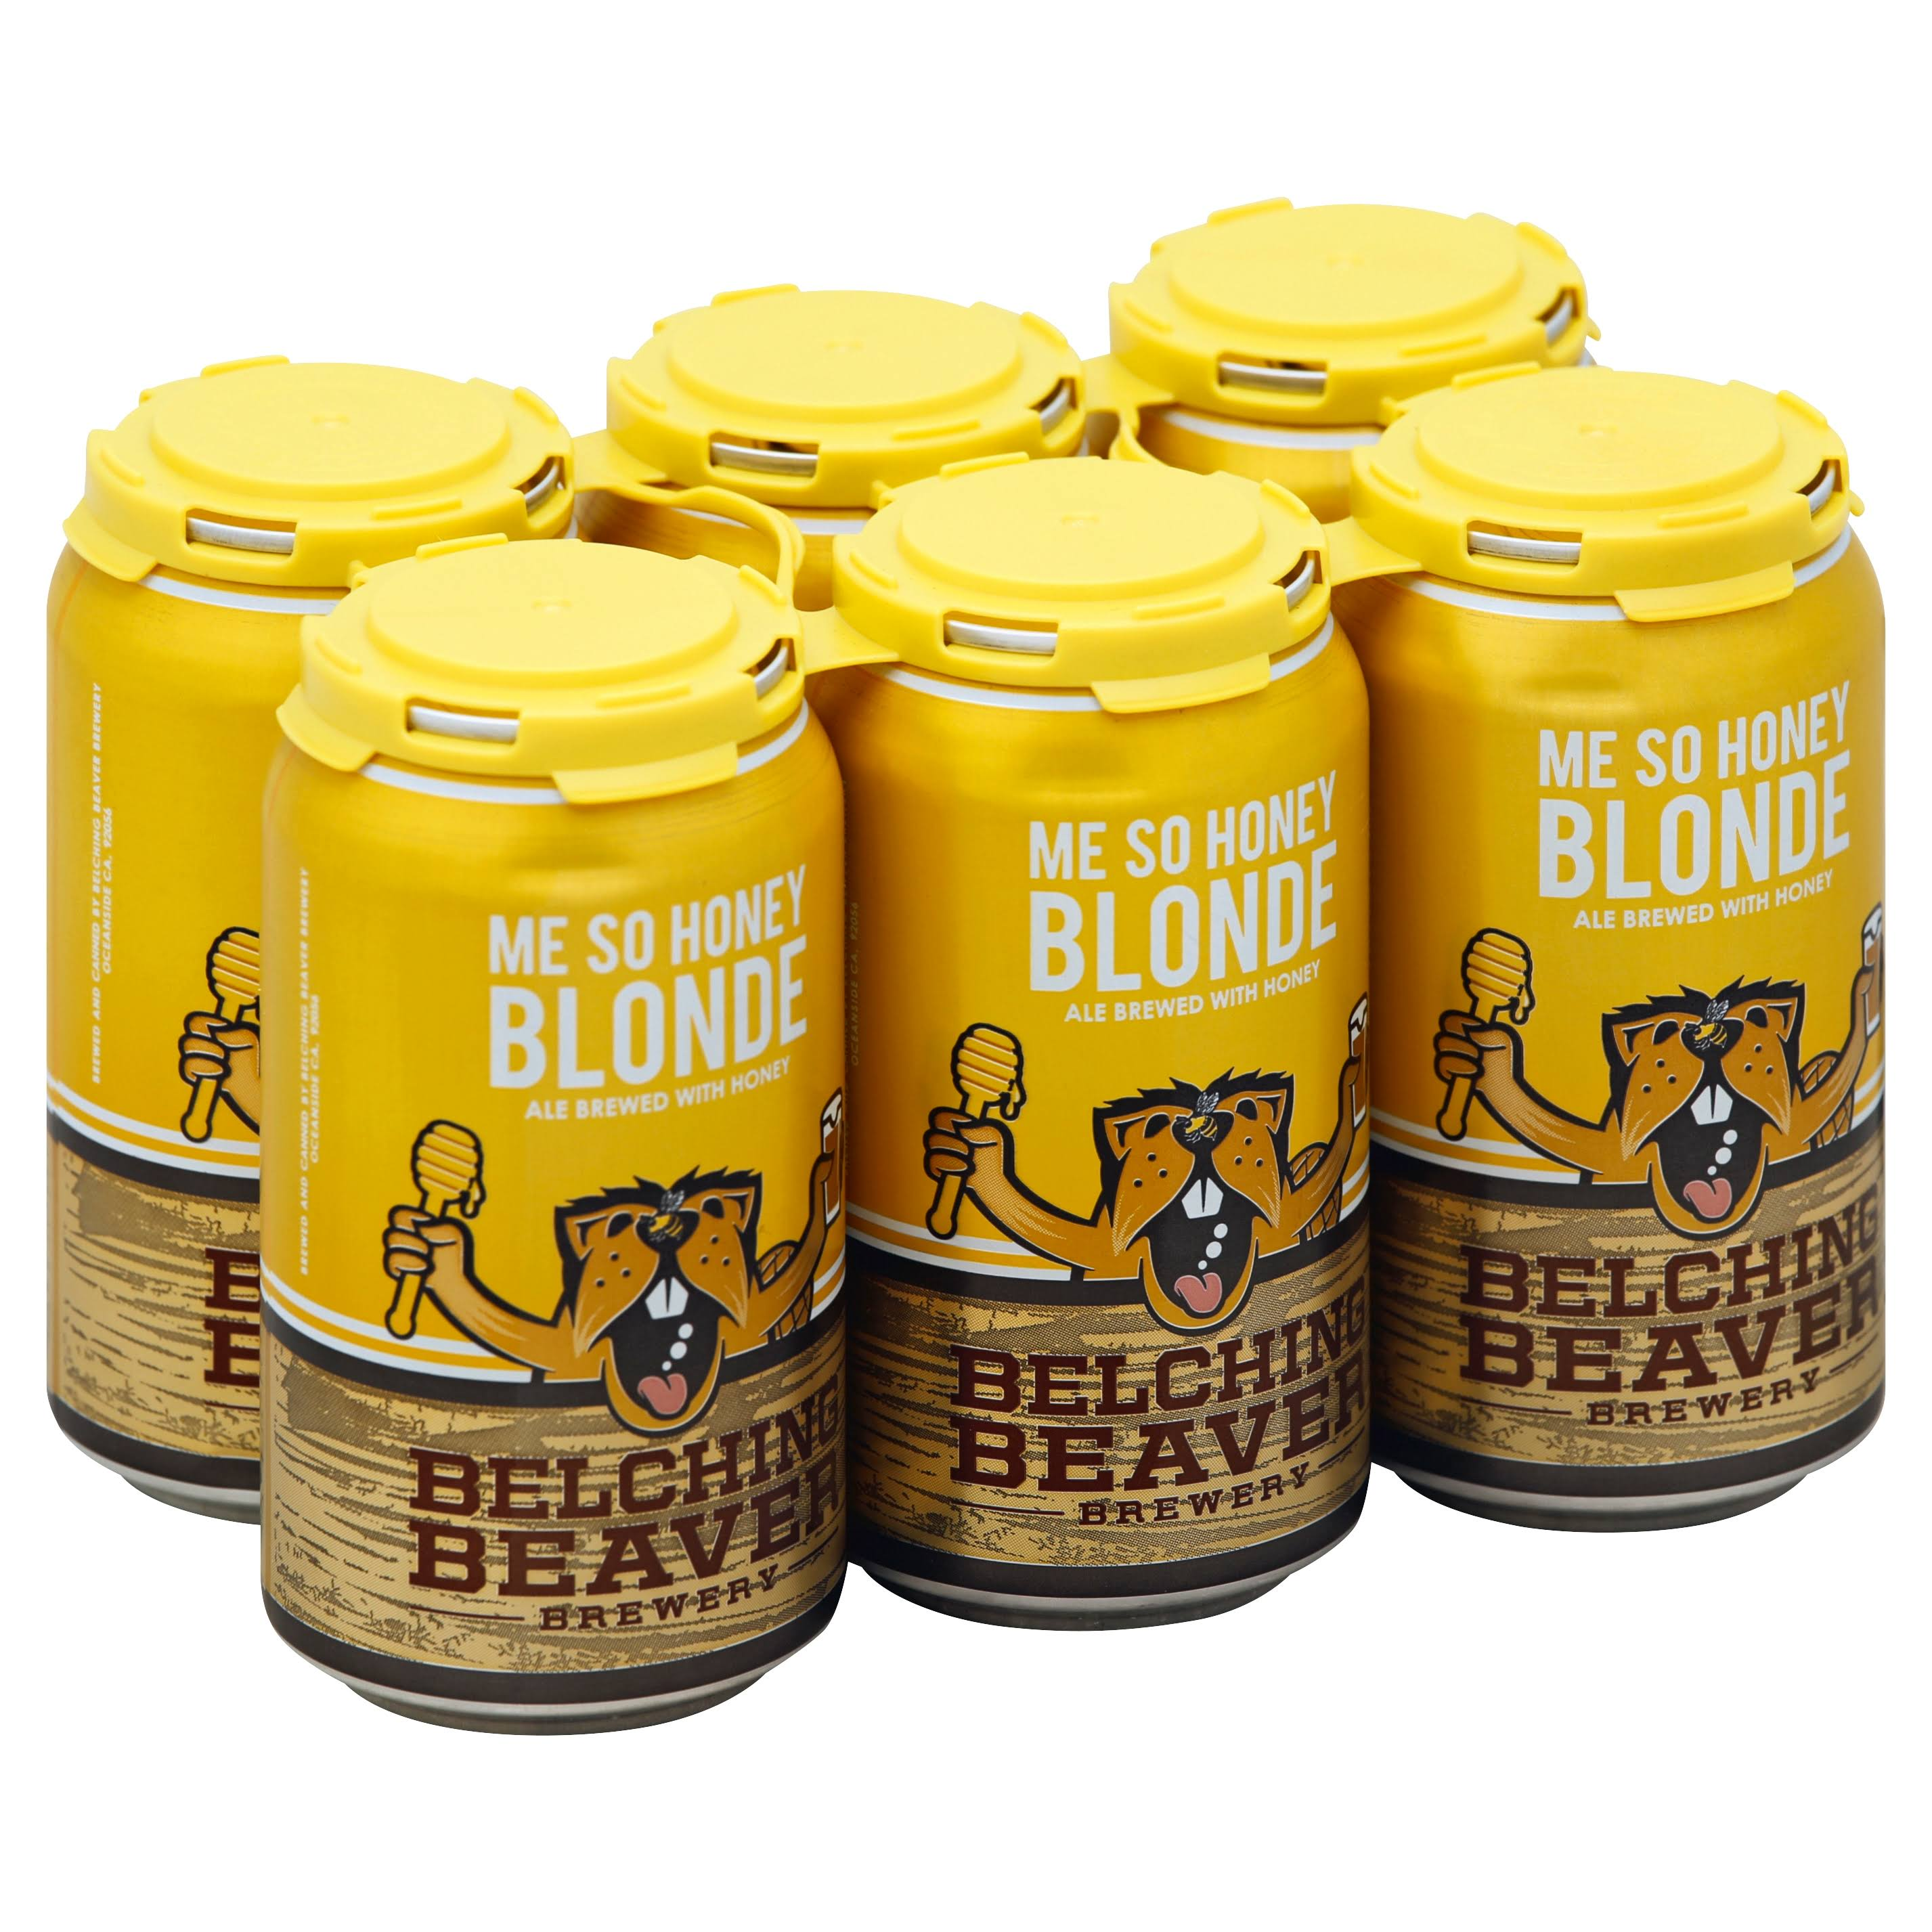 Belching Beaver Honey Wheat Ale - 6 pack, 12 fl oz cans